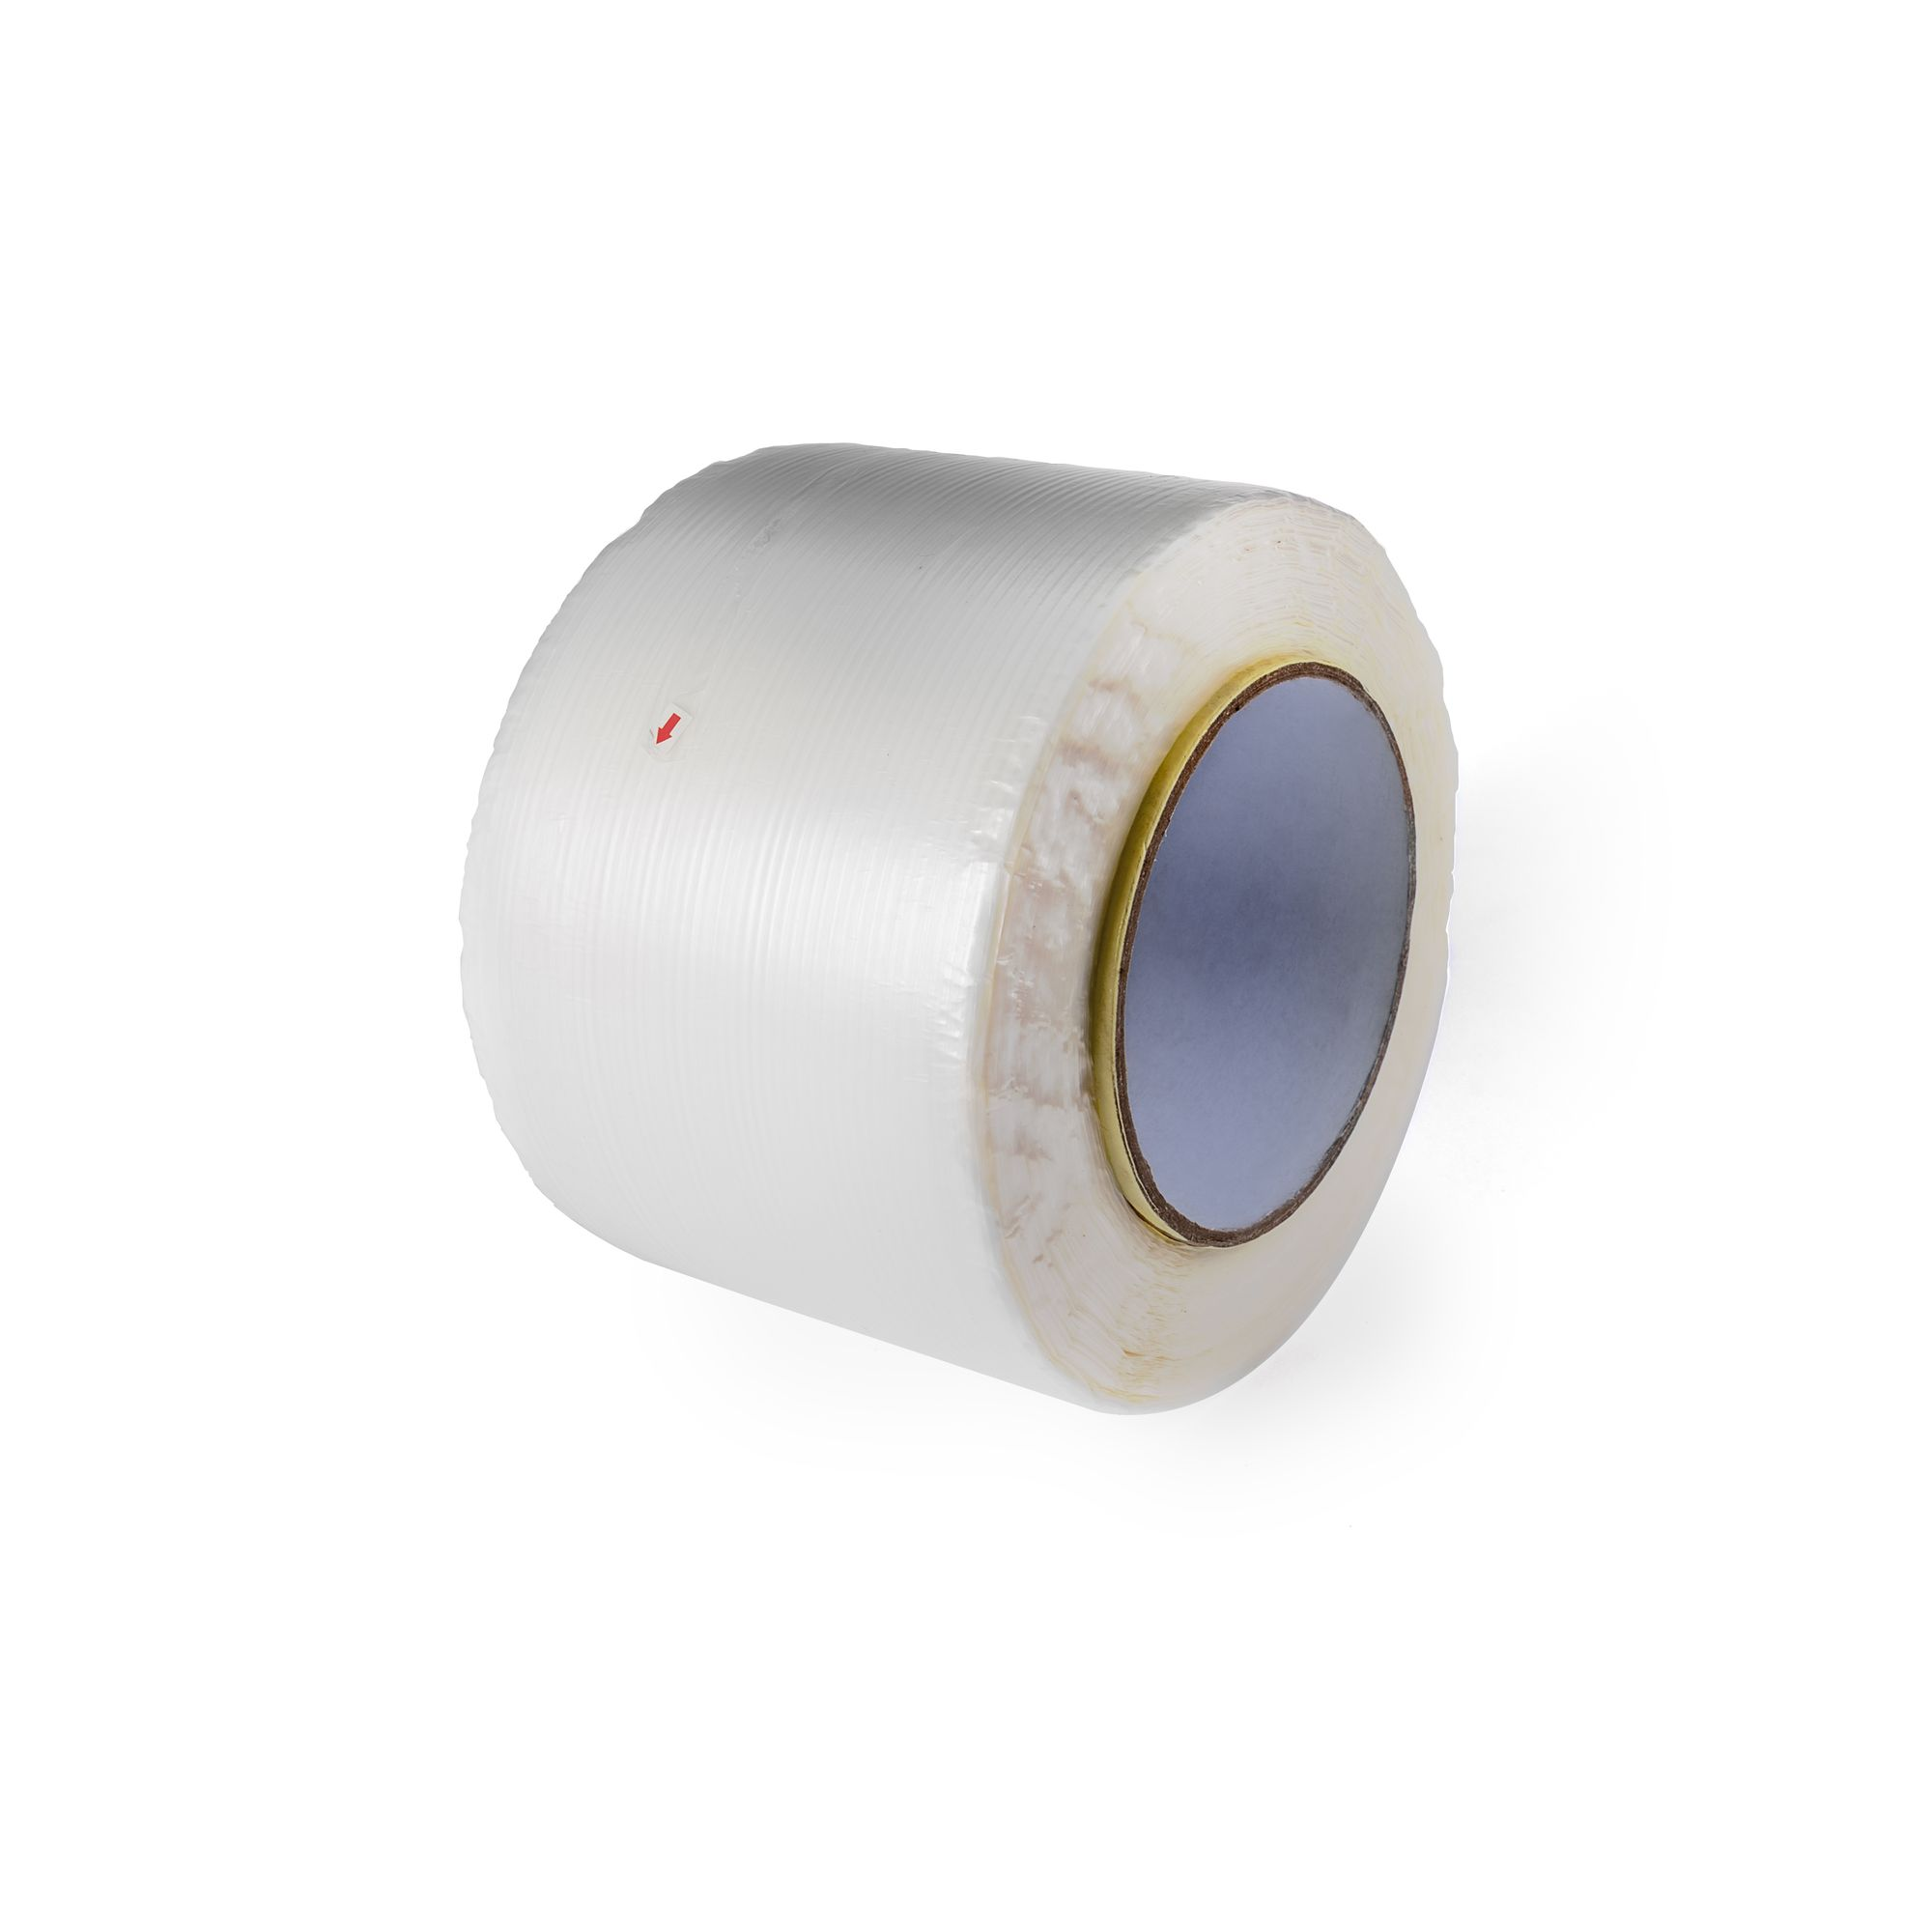 Permanent tape closures - Tamper evident - Permanent tape closures - Hotmelt adhesive - Hotmelt adhesive - The security tape company - Reseleable tape Closures - Film transfer - Silicone release liner - http://www.kbedich.com - Cintas de seguridad